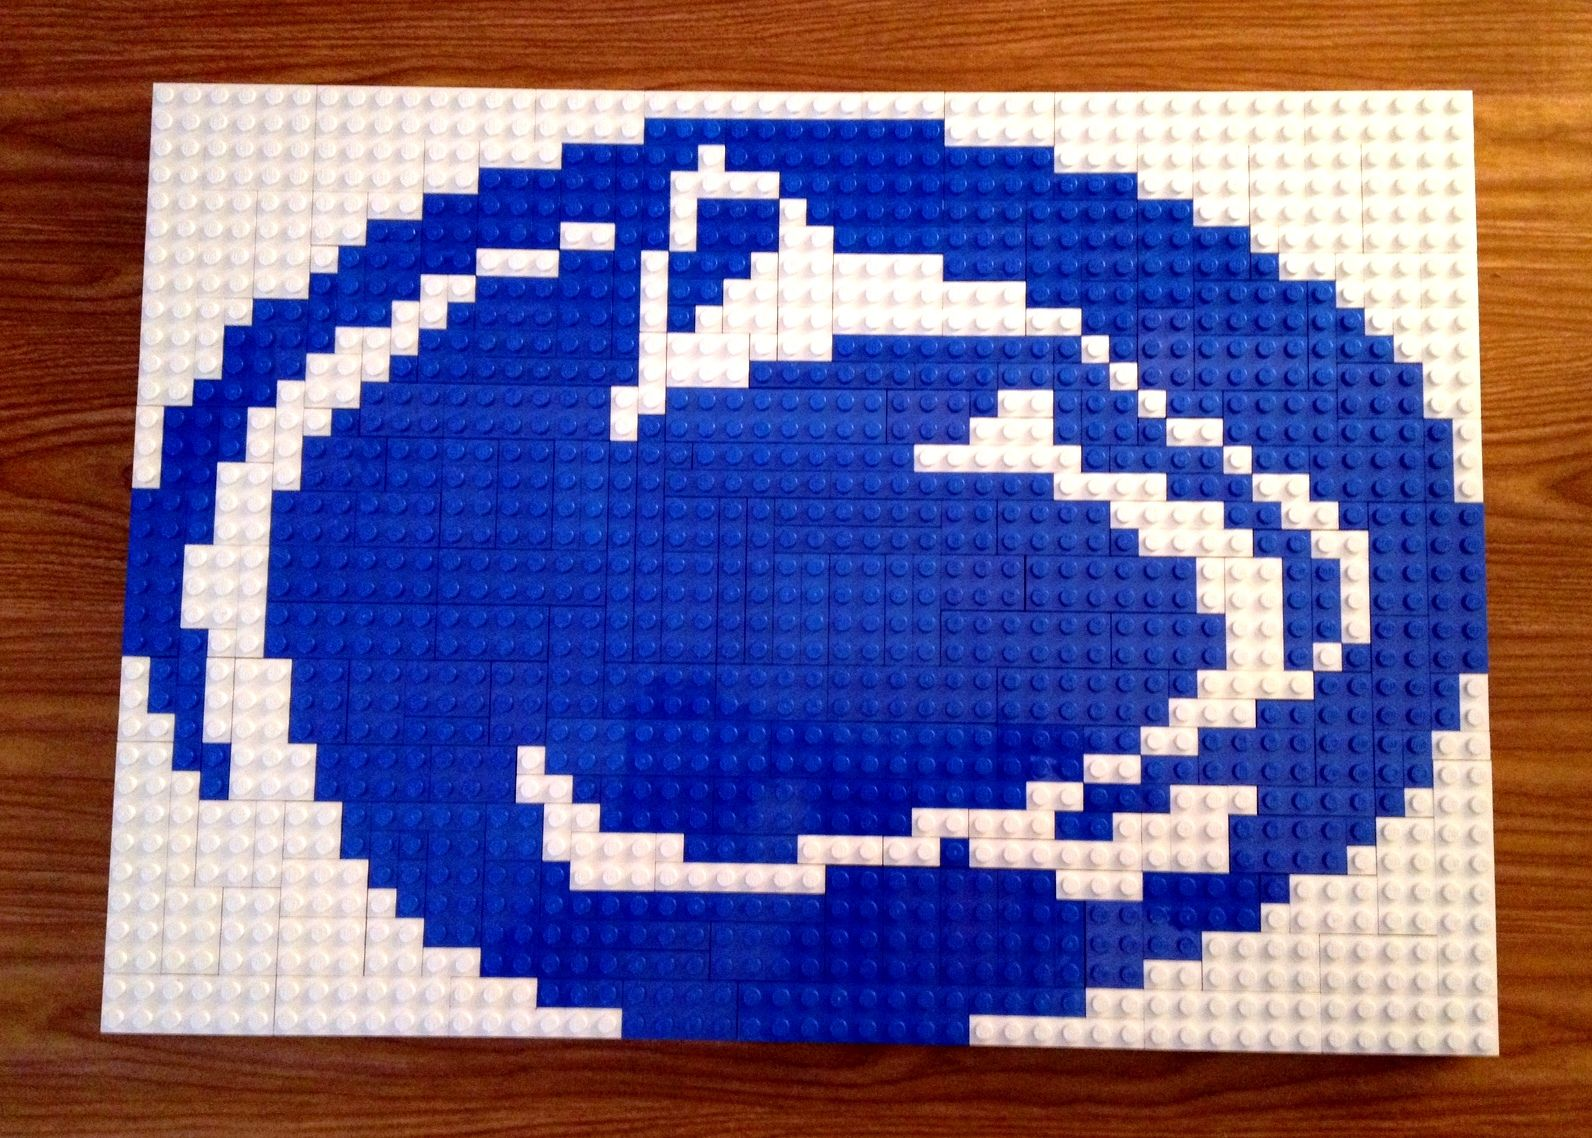 Penn State Nittany Lion Lego Logo Design From Keeping It Crafty